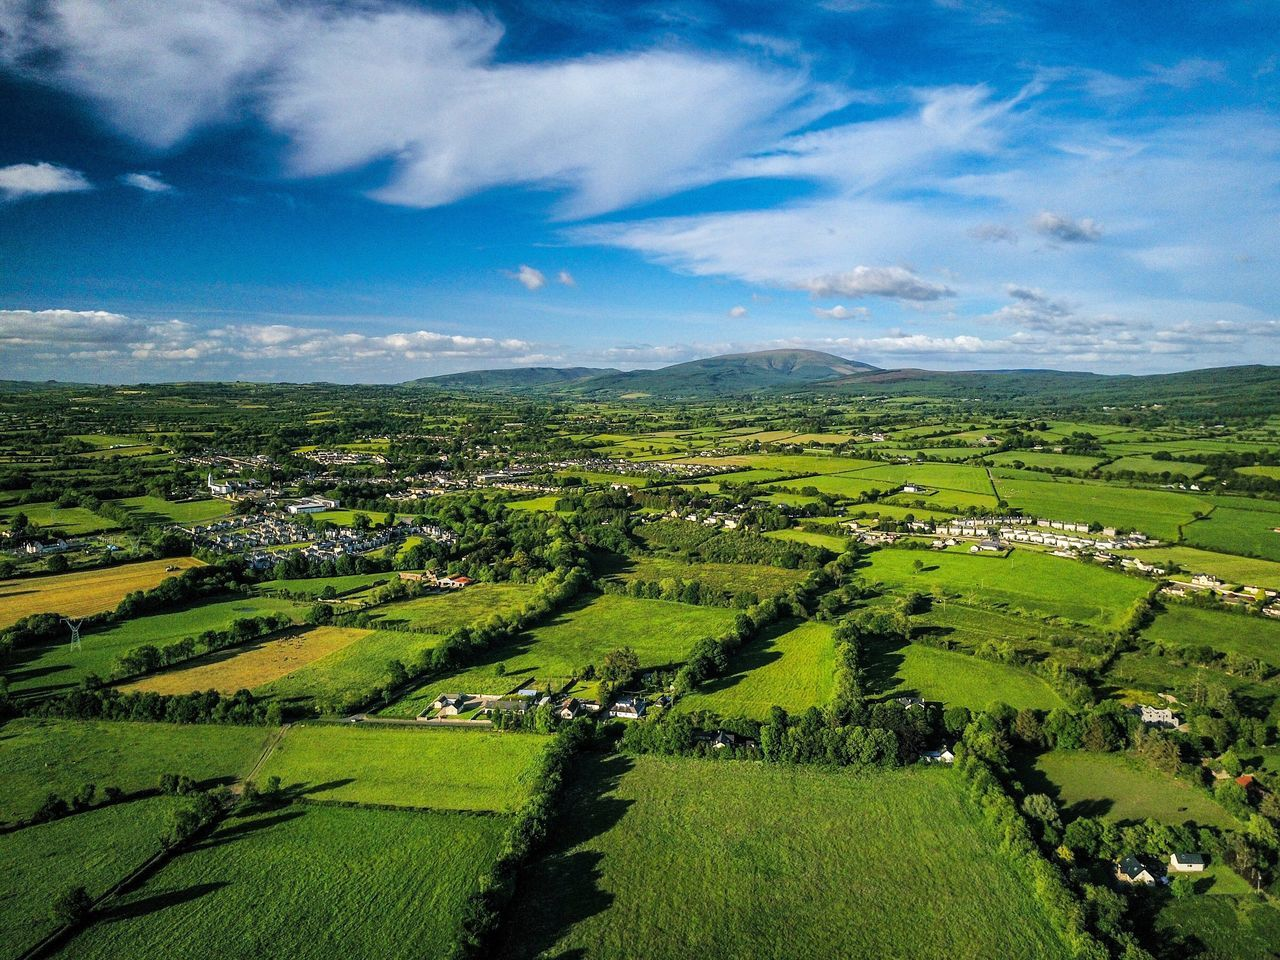 Landscape Tranquil Scene Agriculture Beauty In Nature Scenics Nature Field Rural Scene Sky Farm Green Color Cloud - Sky Tranquility Cultivated Land No People Patchwork Landscape Day Outdoors Aerial View Grass Ireland Newport Drone  Dji